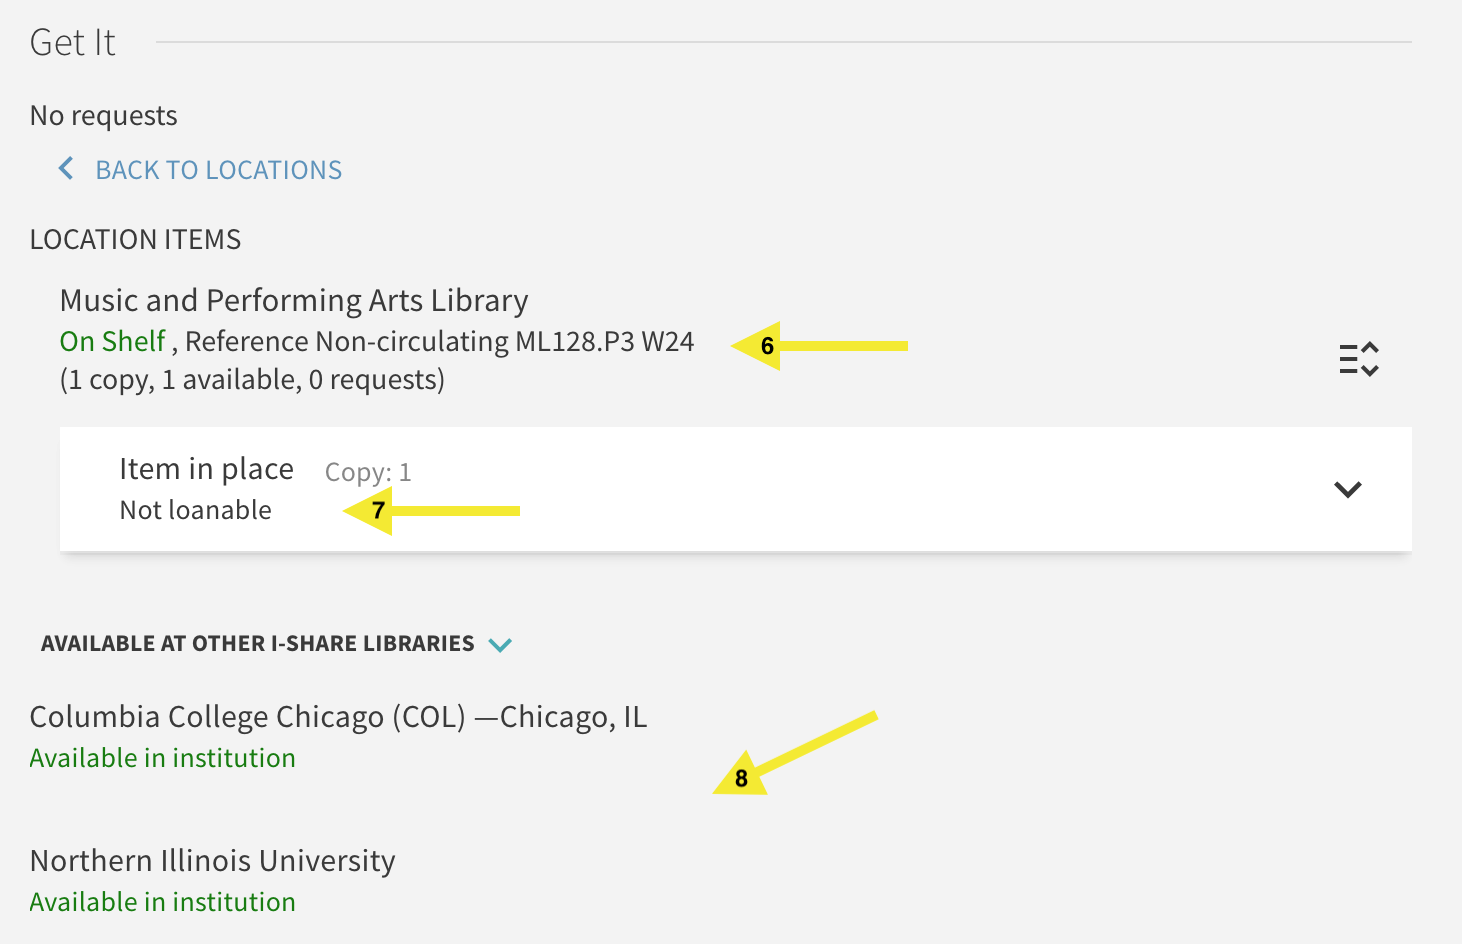 Screenshot of Primo library catalog focusing on the Get It section